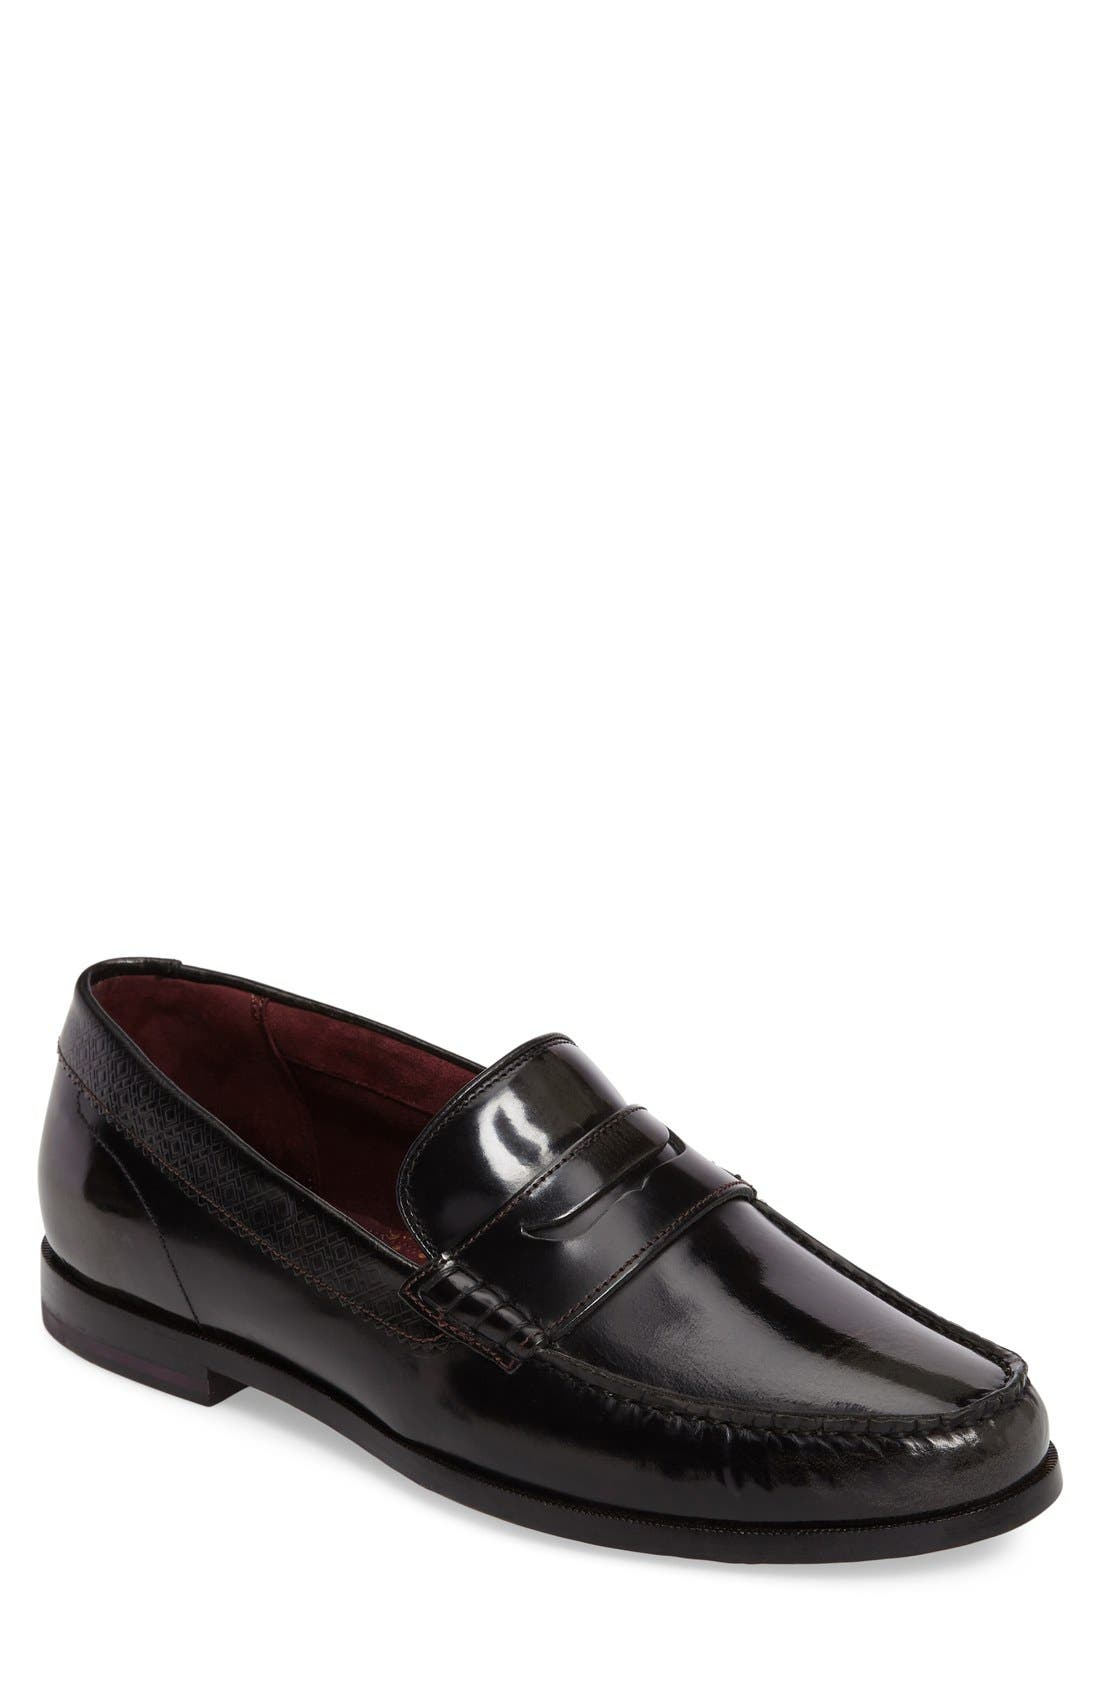 Rommeo Penny Loafer,                             Alternate thumbnail 8, color,                             028